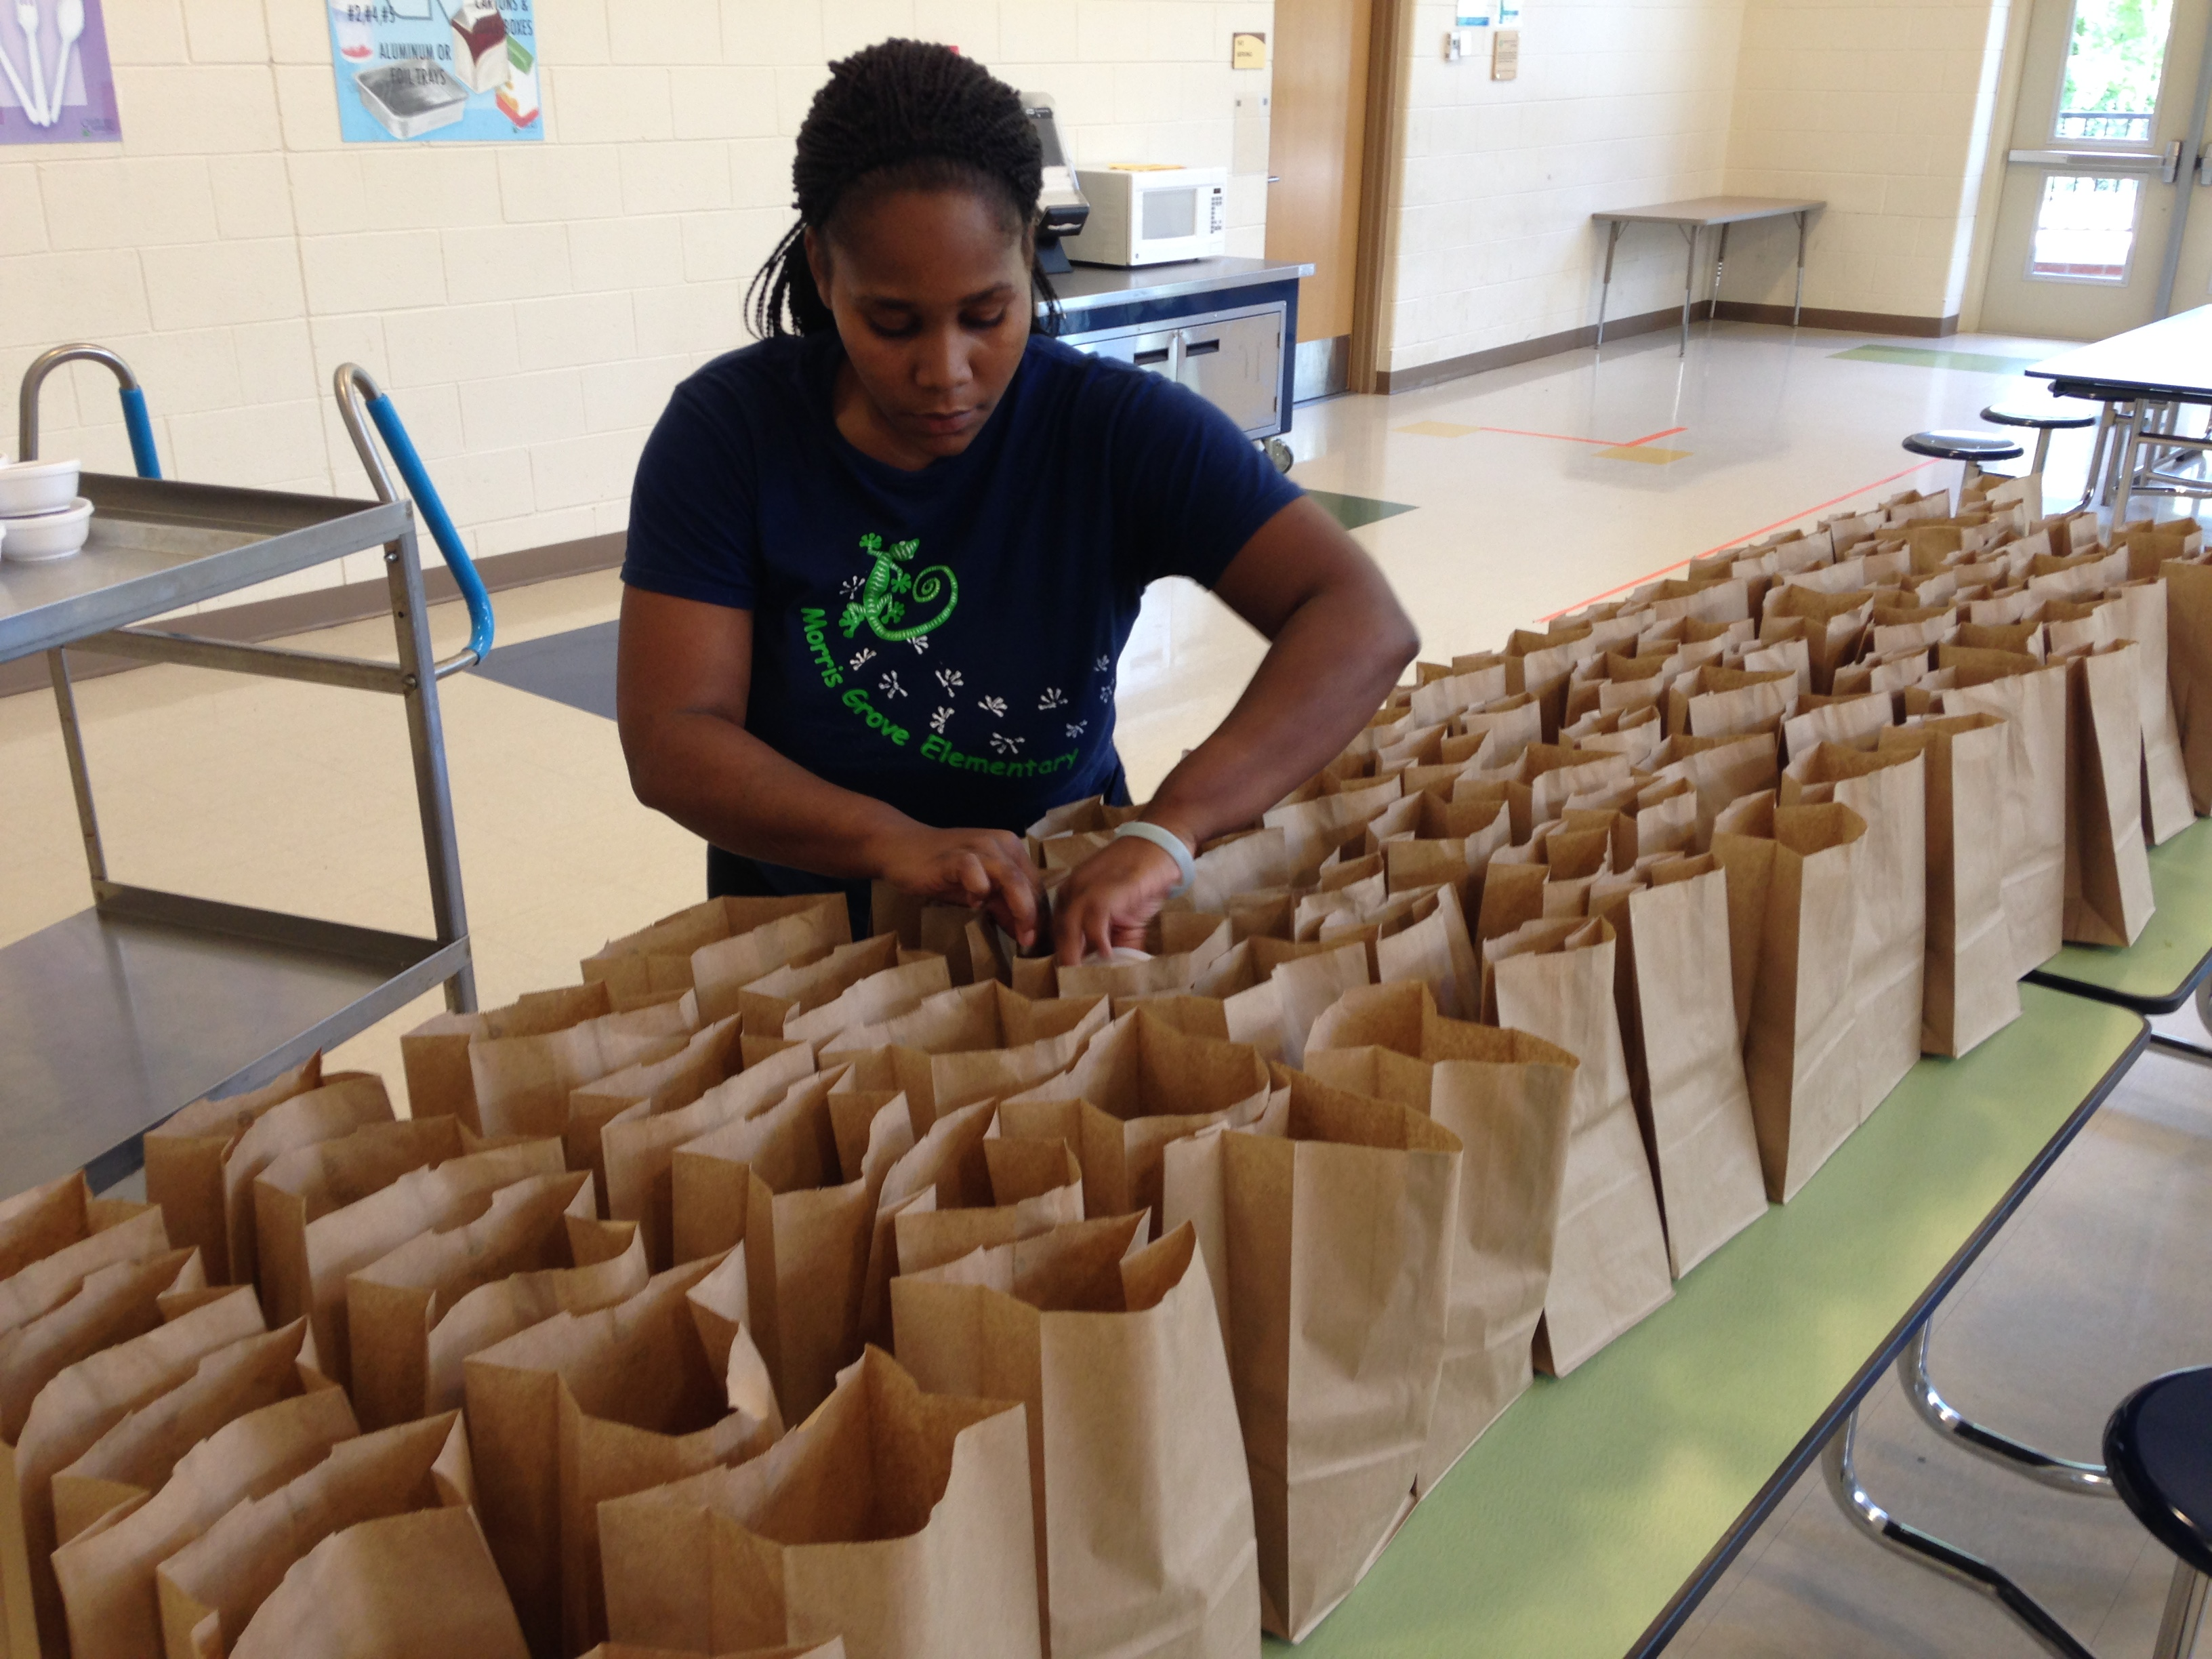 CHCCS Providing Lunches While Schools Closed for Teacher Rally